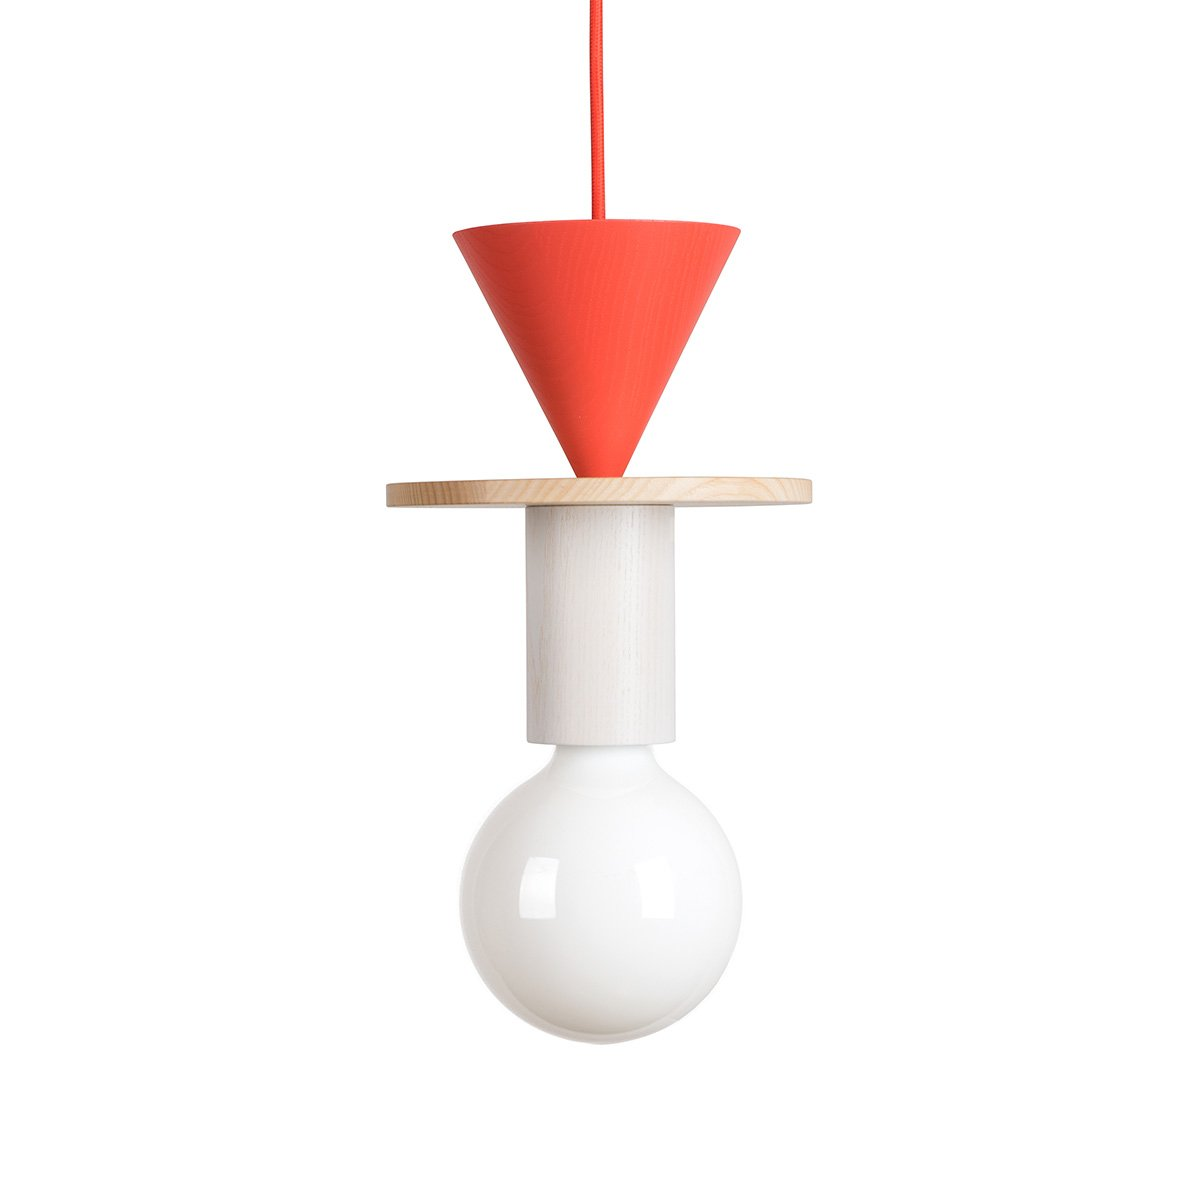 Schneid - Schneid Lighting - Schneid Junit Lamp Record - Record Lighting  - Julia Jessen - Modular Pendant Lamp - German Design - Lighting | Sustainable Living | Simple Design